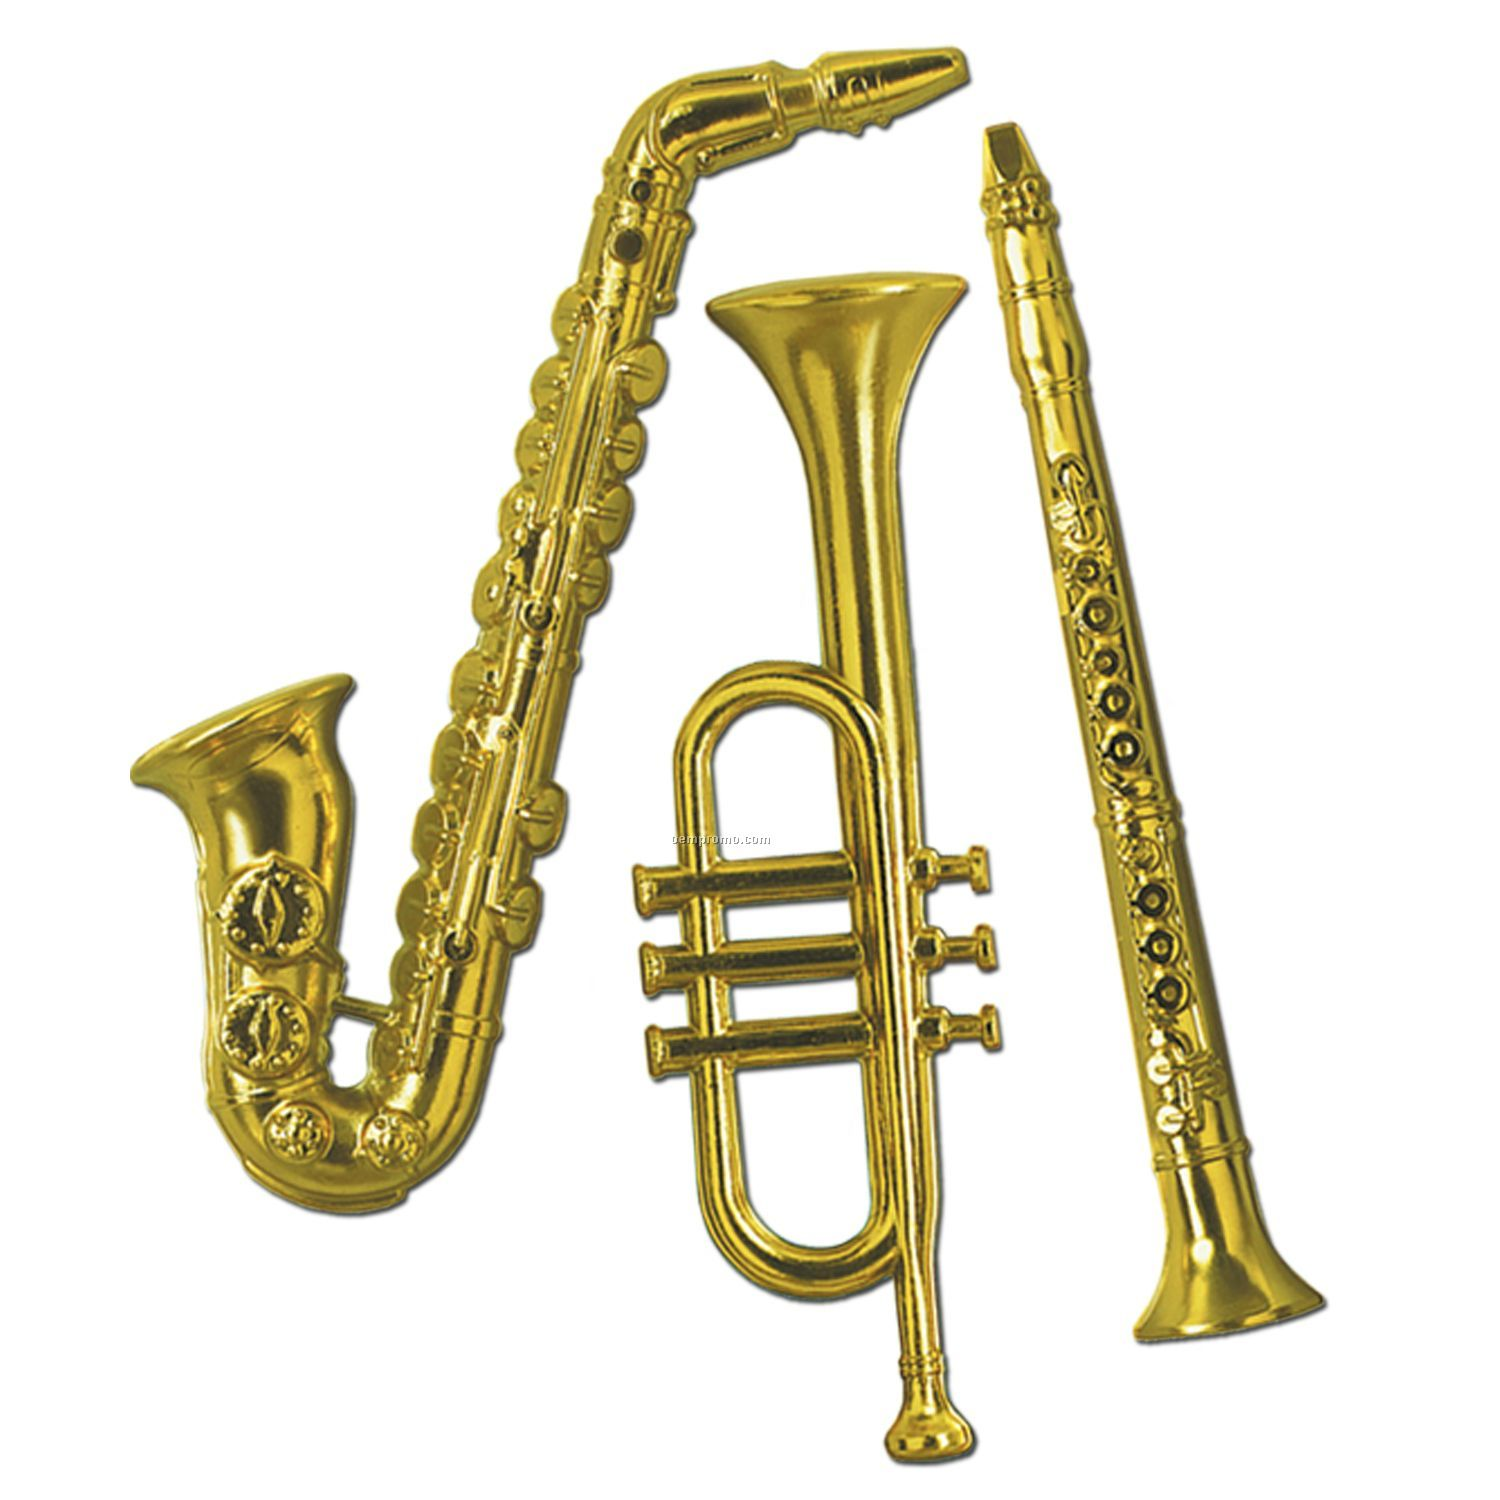 Opinions on Musical instrument